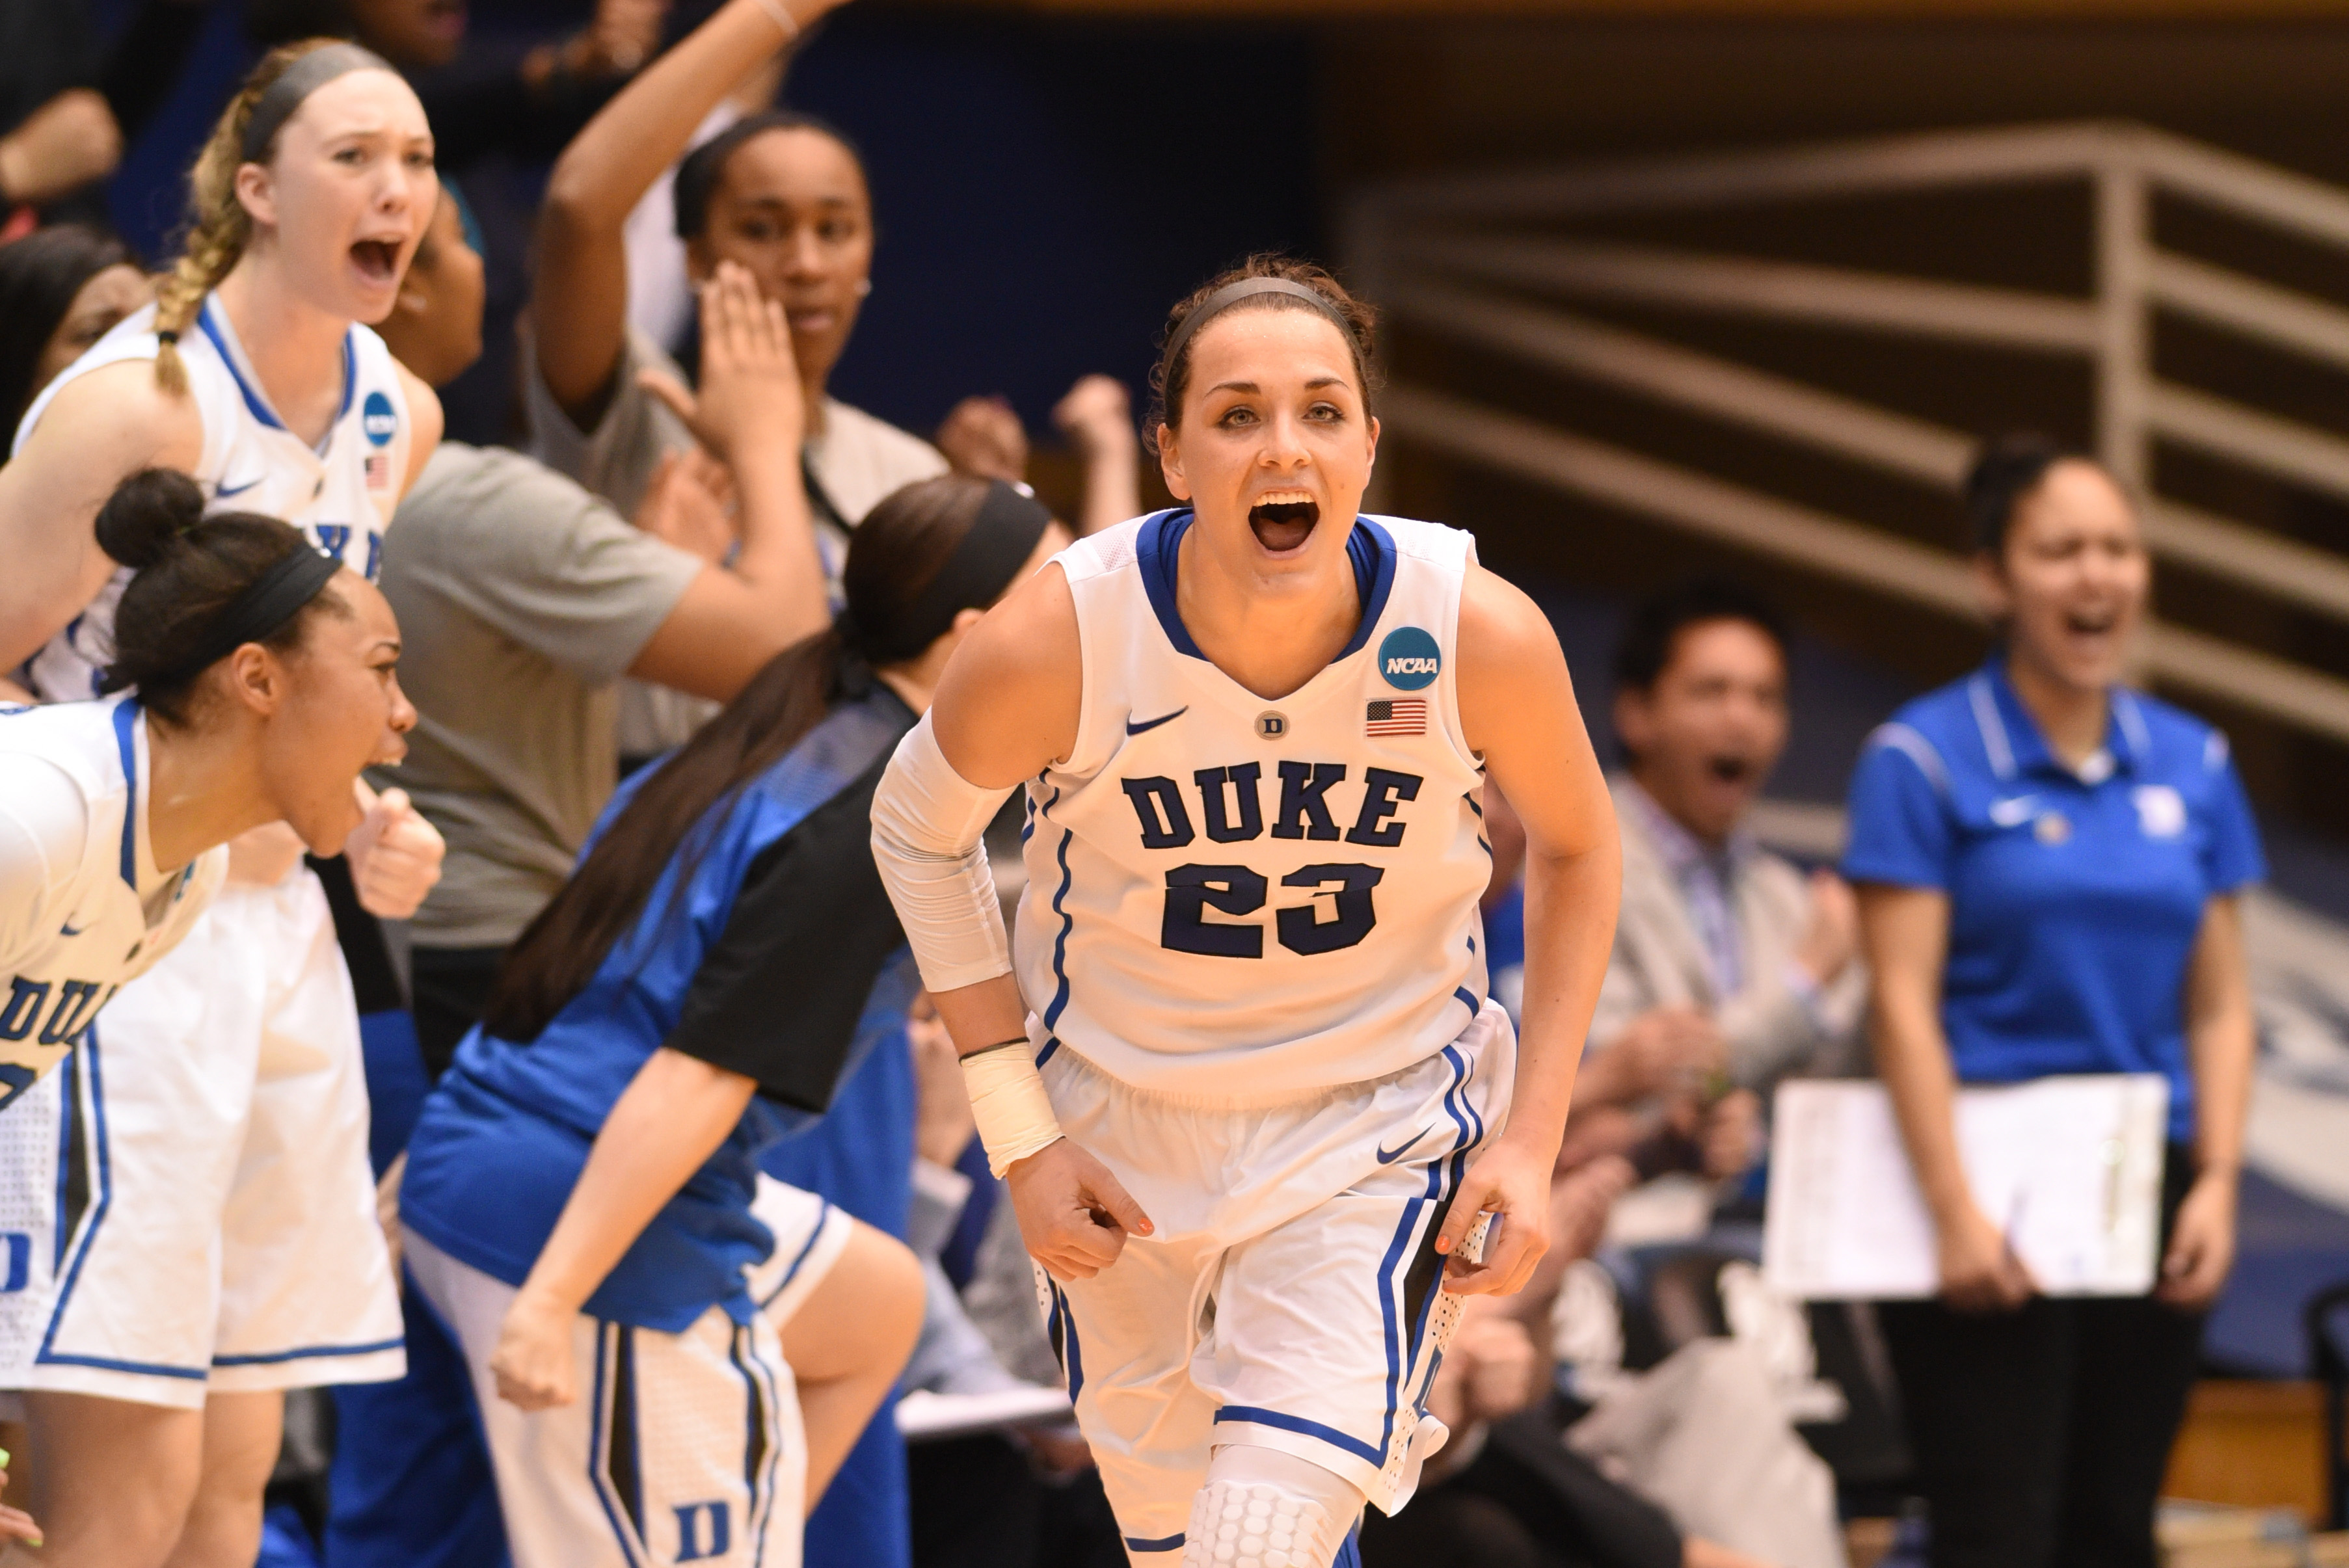 8469710-ncaa-womens-basketball-ncaa-tournament-2nd-round-duke-vs-mississippi-state